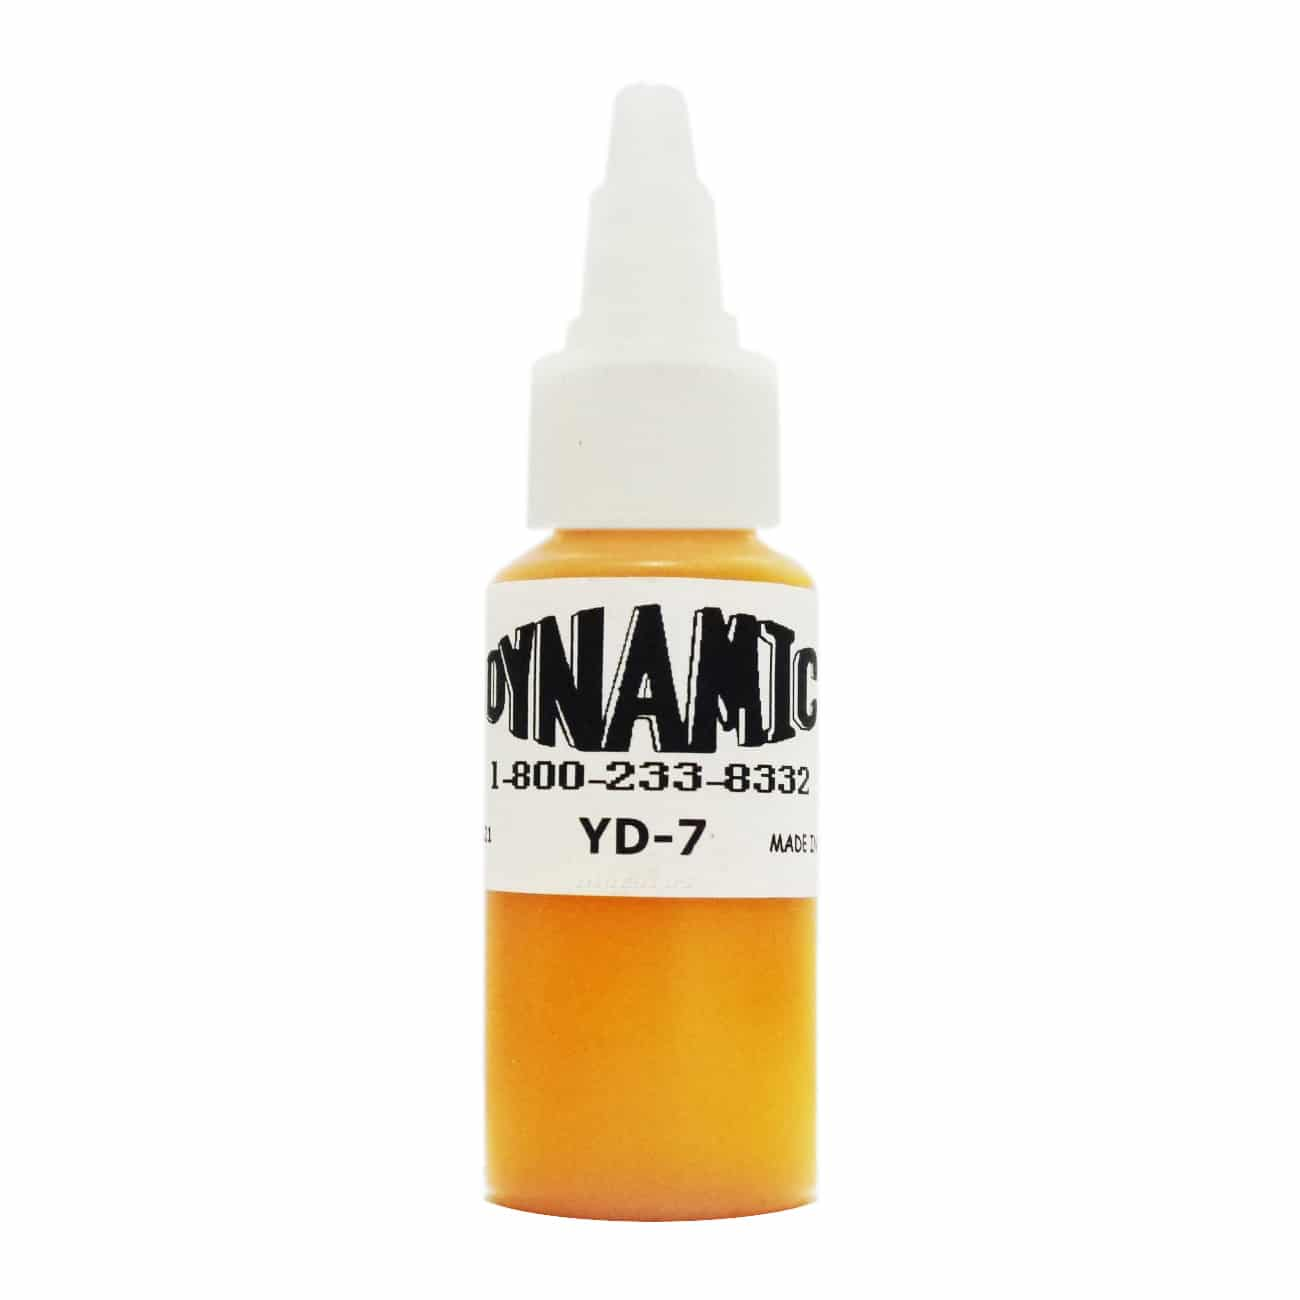 Dynamic Color Tattoo Ink 1oz: Golden Yellow